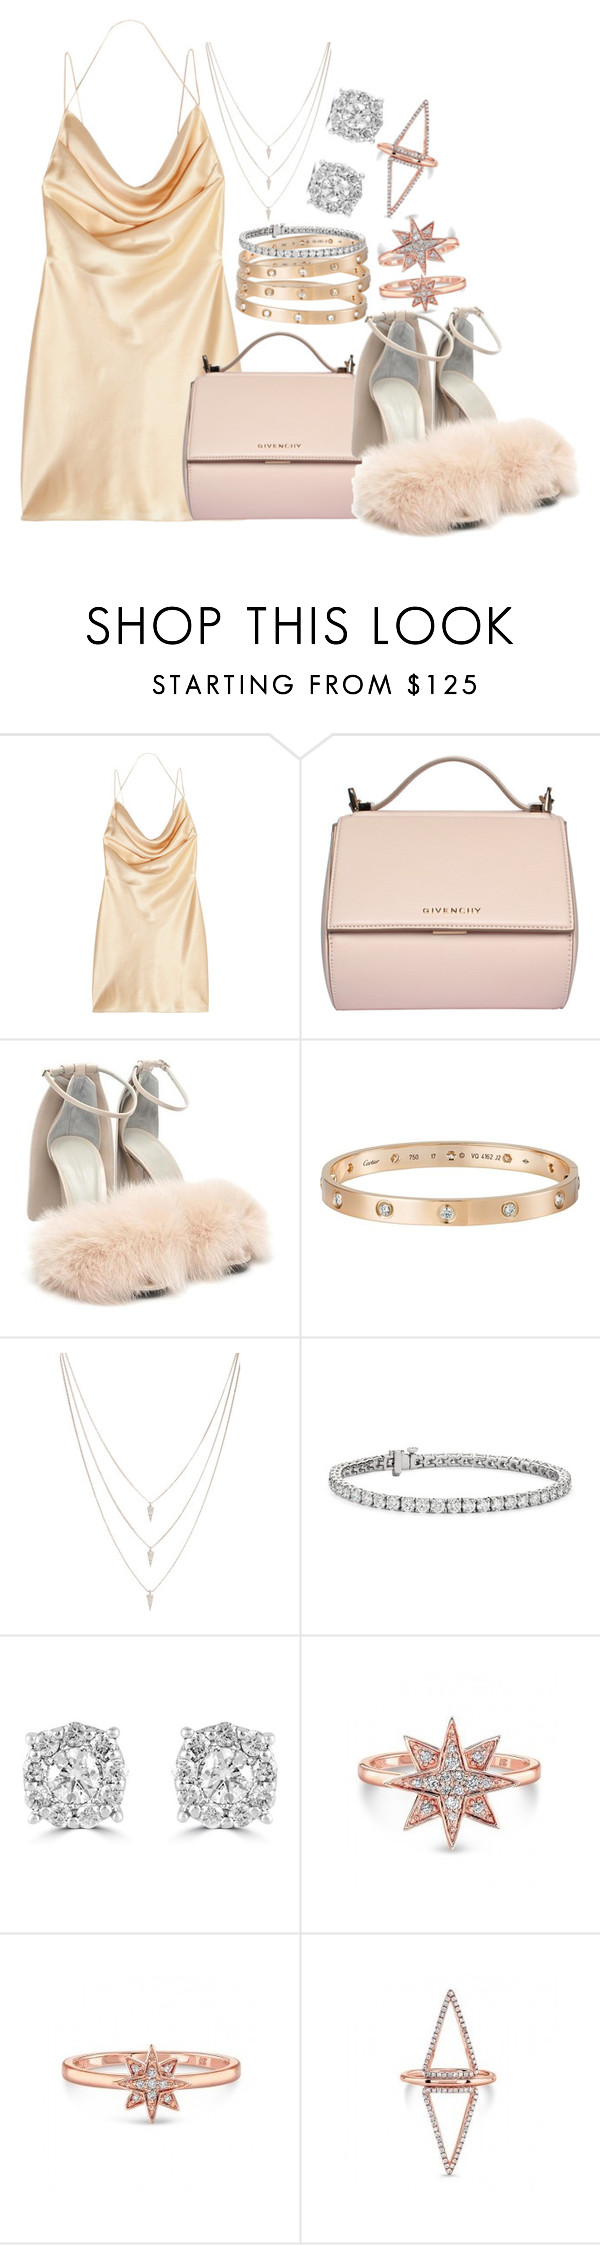 """""""Saint Laurent, Givenchy and Cartier"""" by camrzkn ❤ liked on Polyvore featuring Yves Saint Laurent, Givenchy, Alexander Wang, Cartier, Melanie Auld, Blue Nile and Effy Jewelry"""